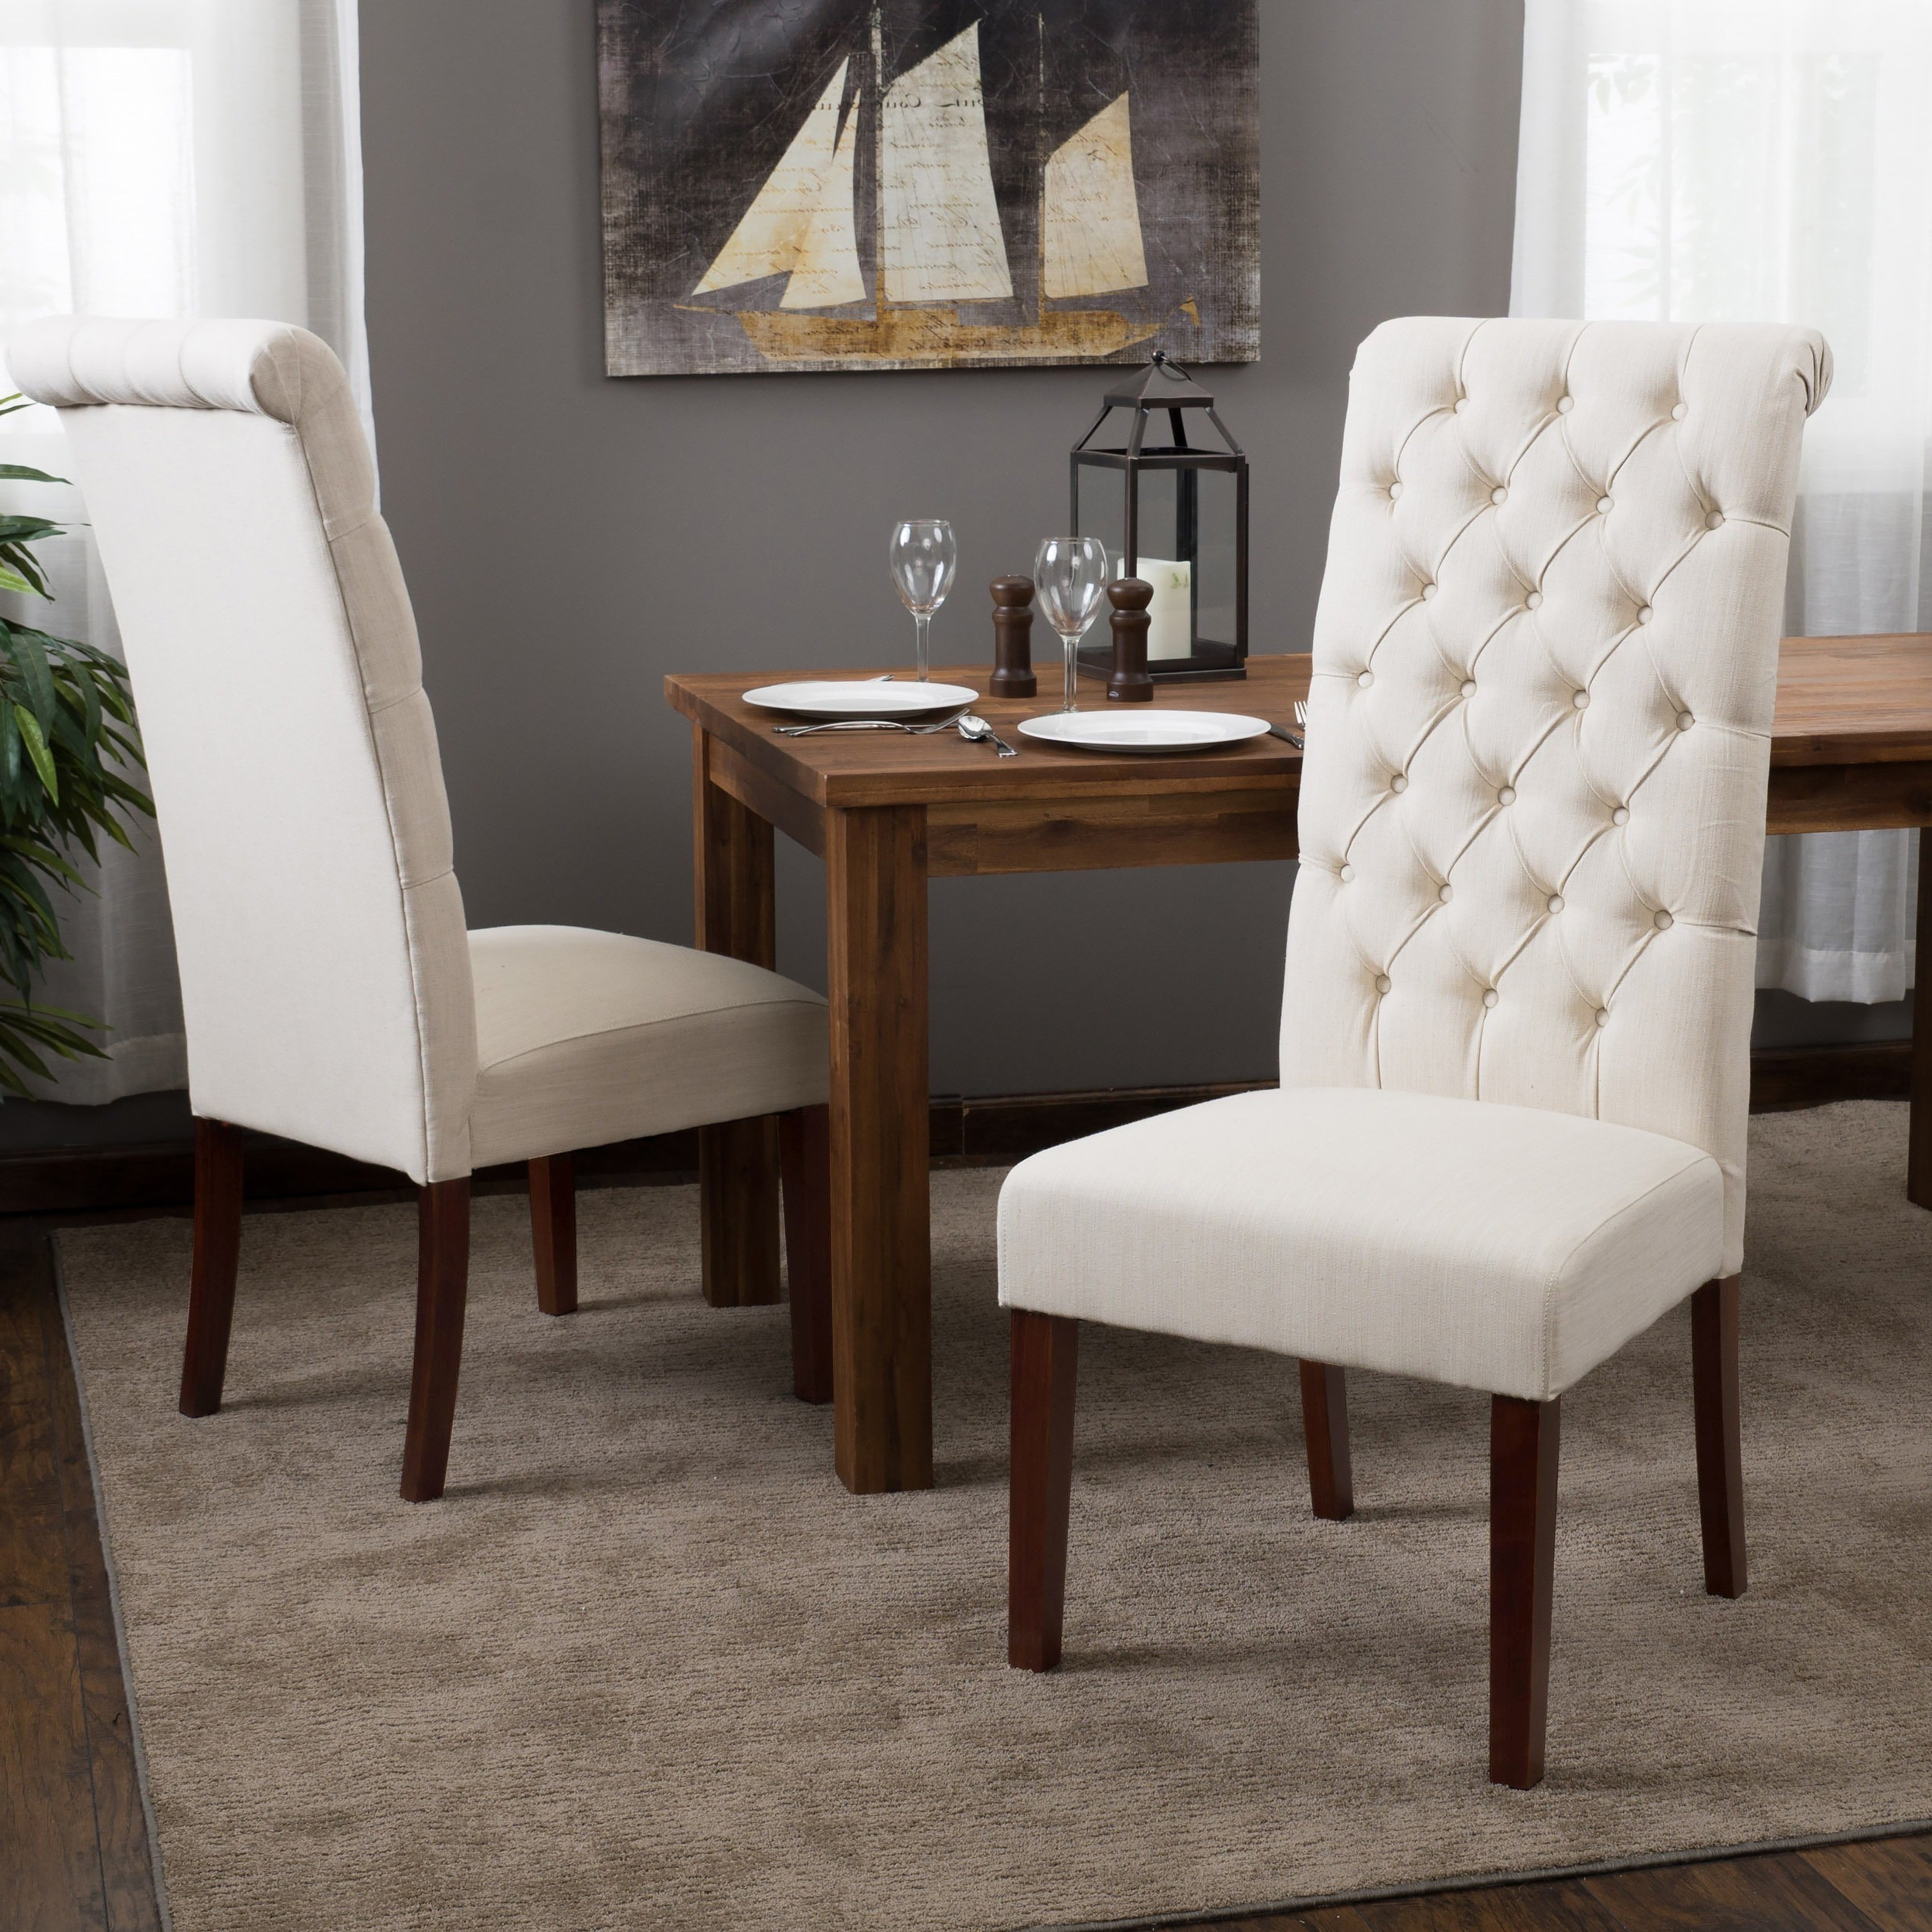 Favorite Caira 7 Piece Rectangular Dining Sets With Diamond Back Side Chairs Inside Shop Tall Natural Tufted Fabric Dining Chair (Set Of 2) (View 17 of 25)